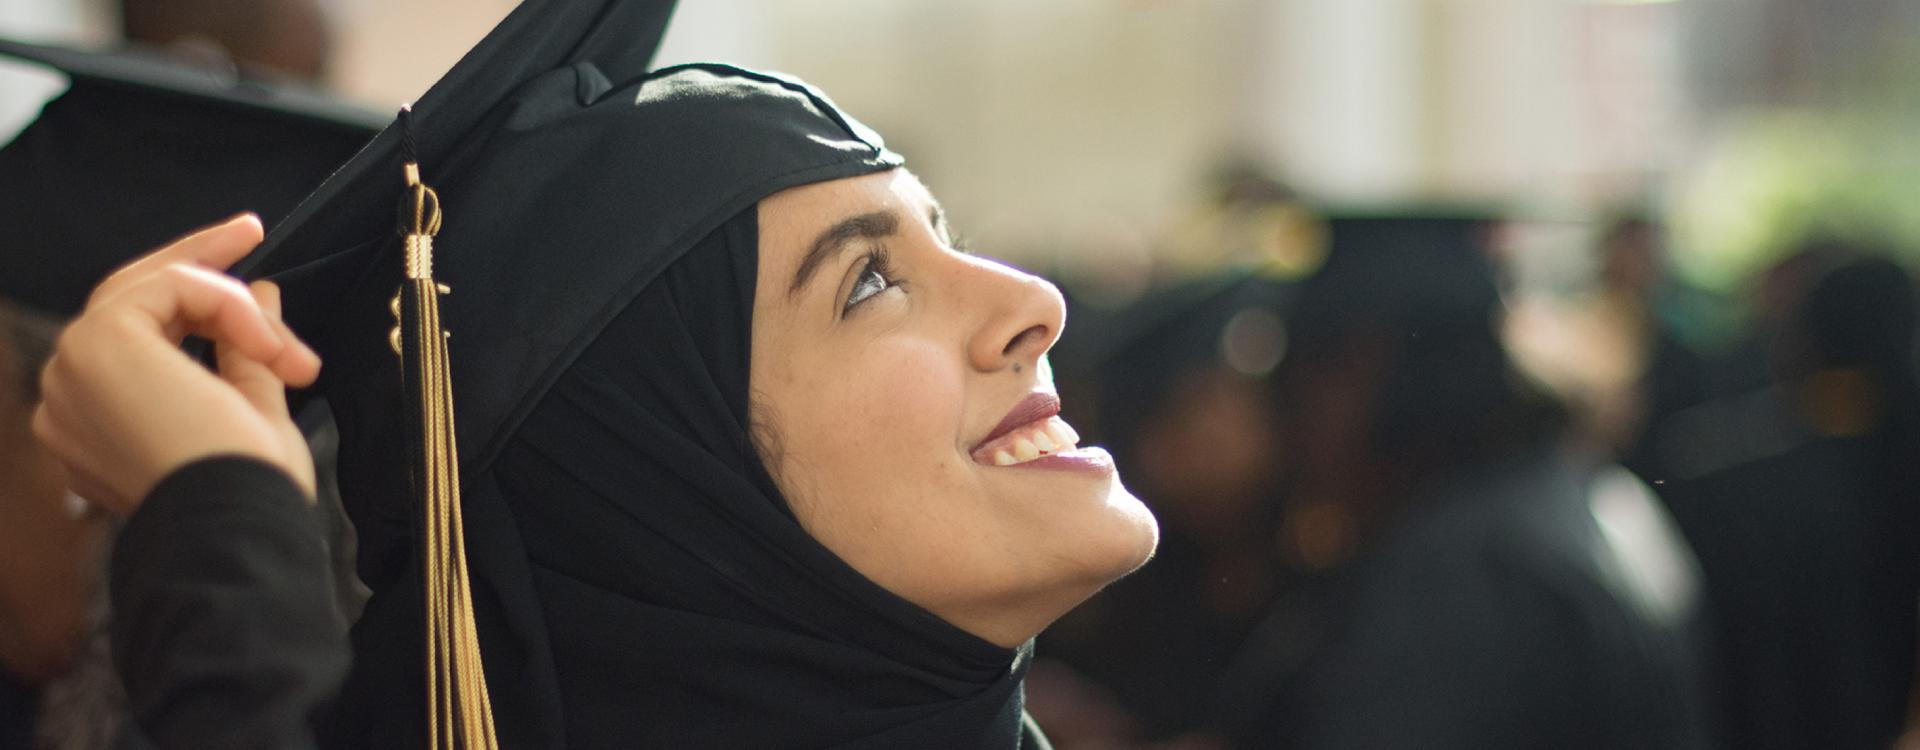 female student in graduation regalia looks up smiling